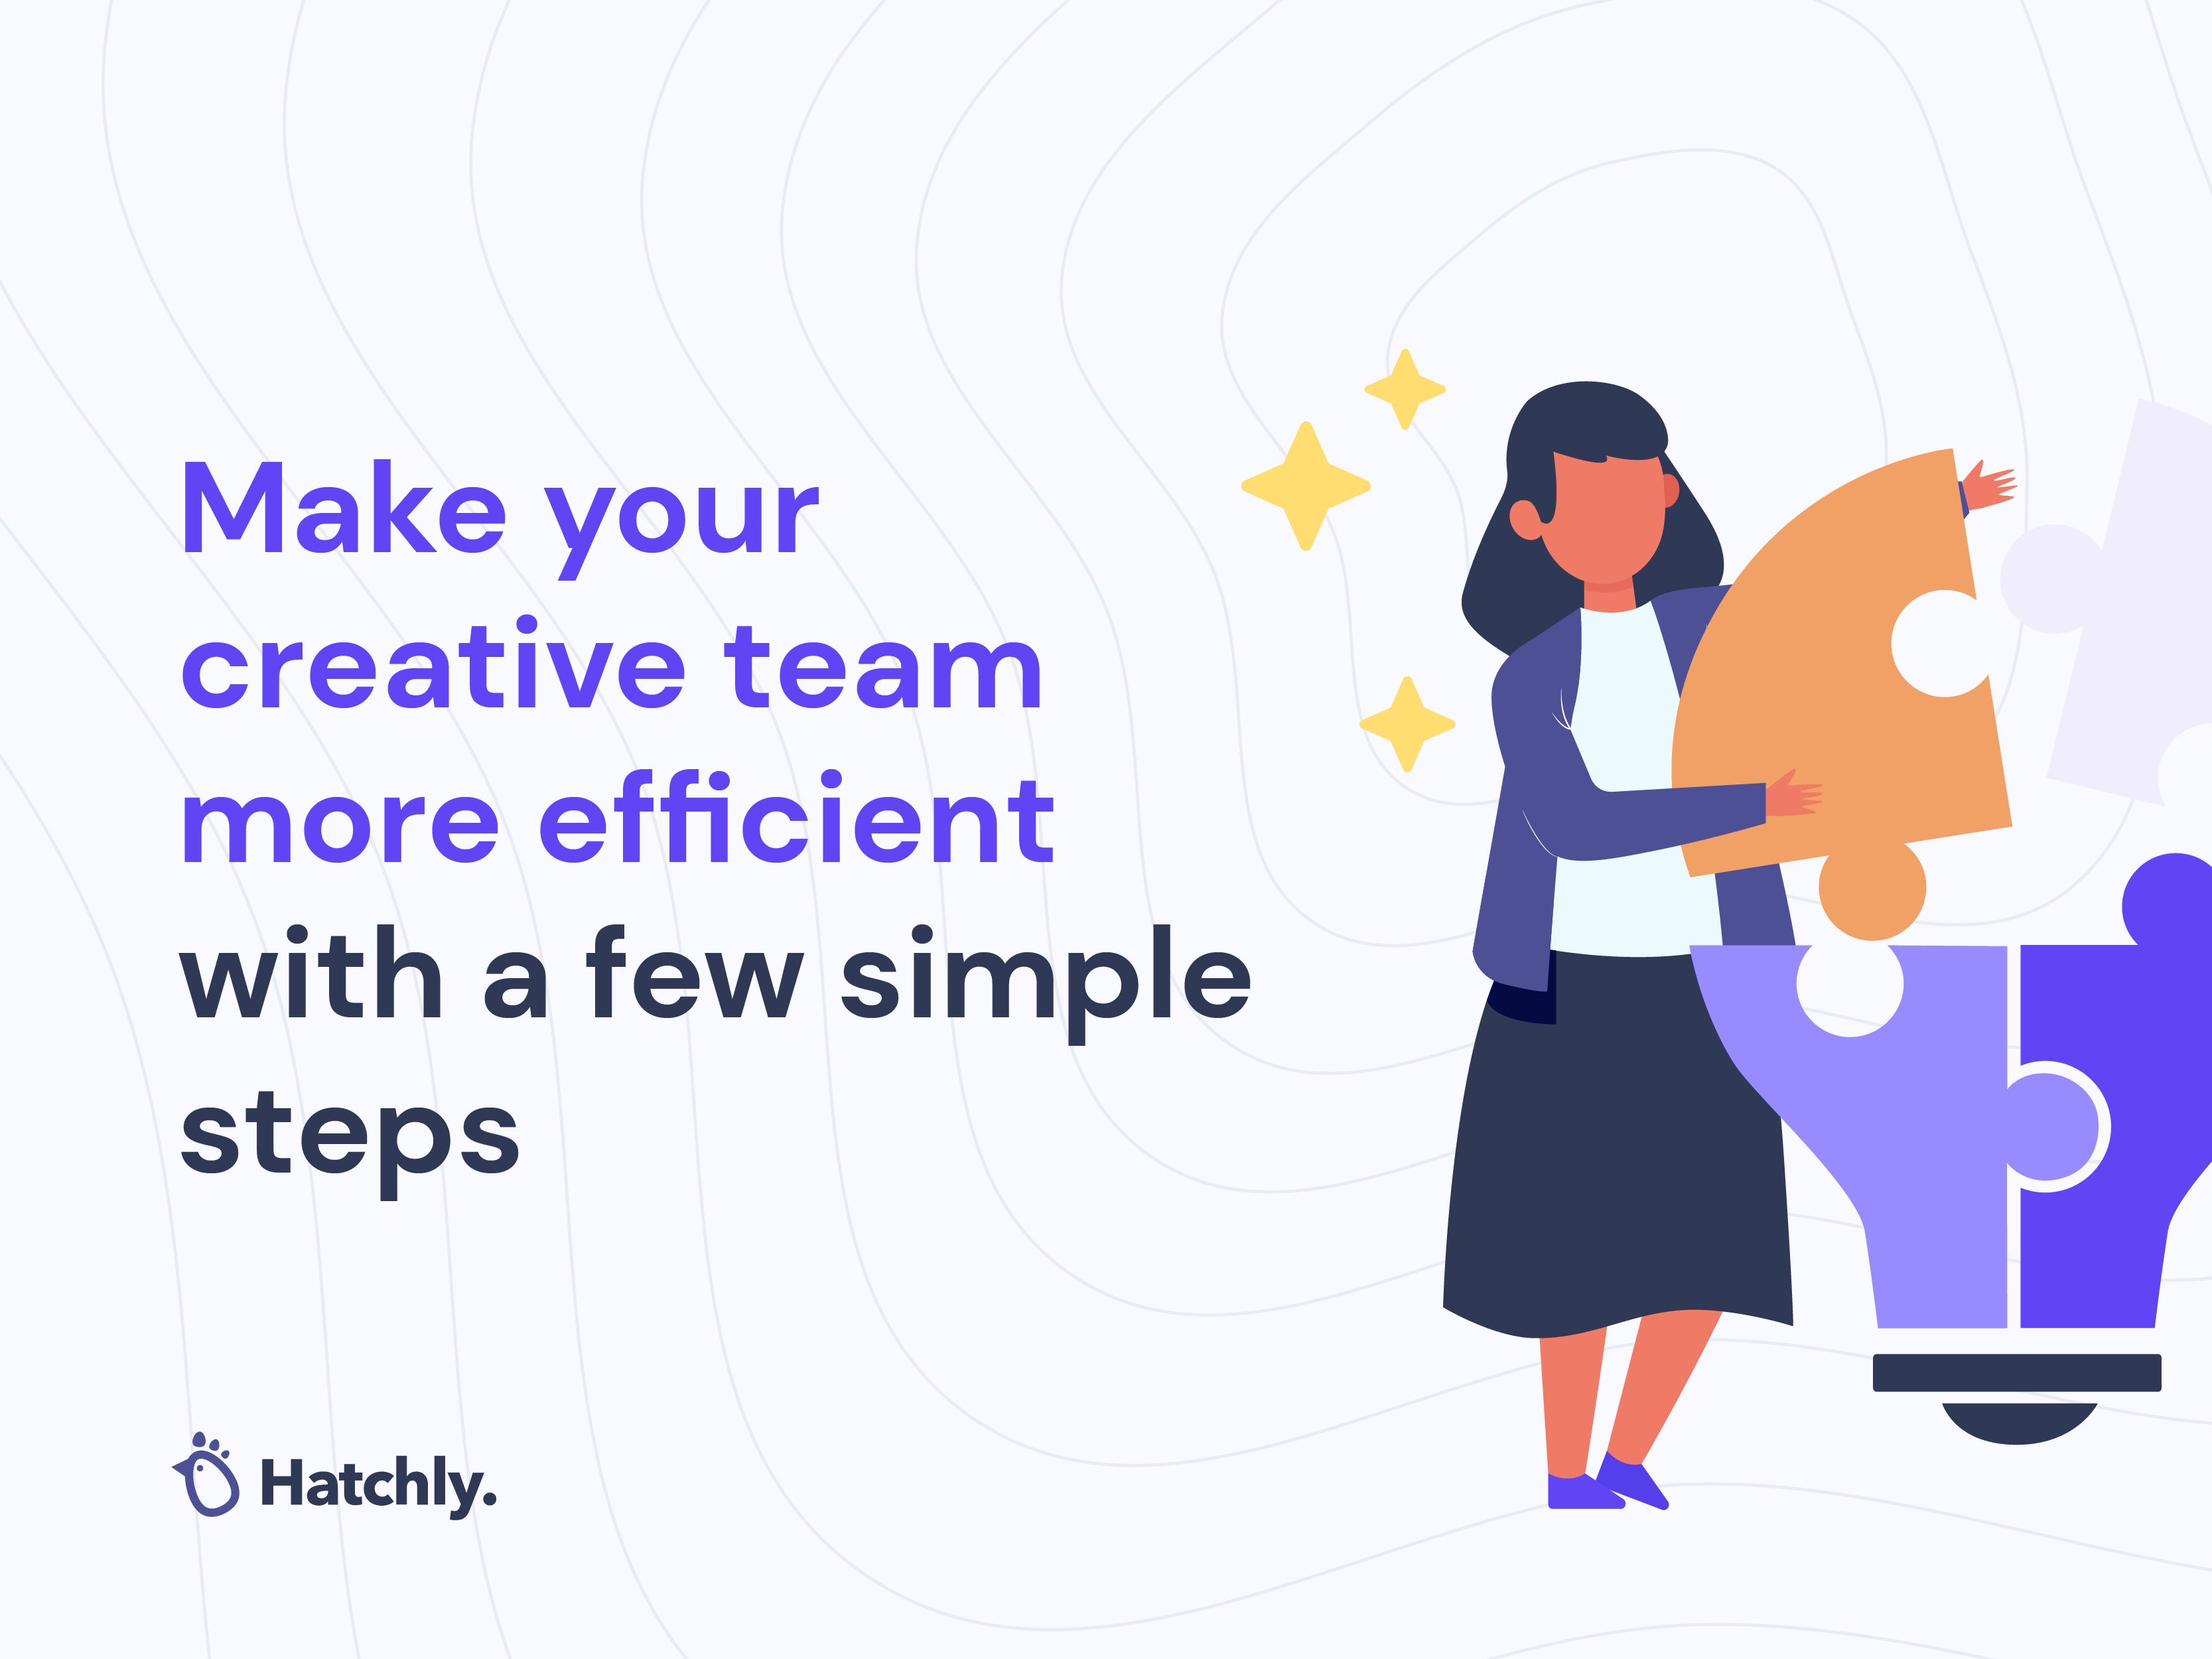 Make your creative team more efficient with a few simple steps